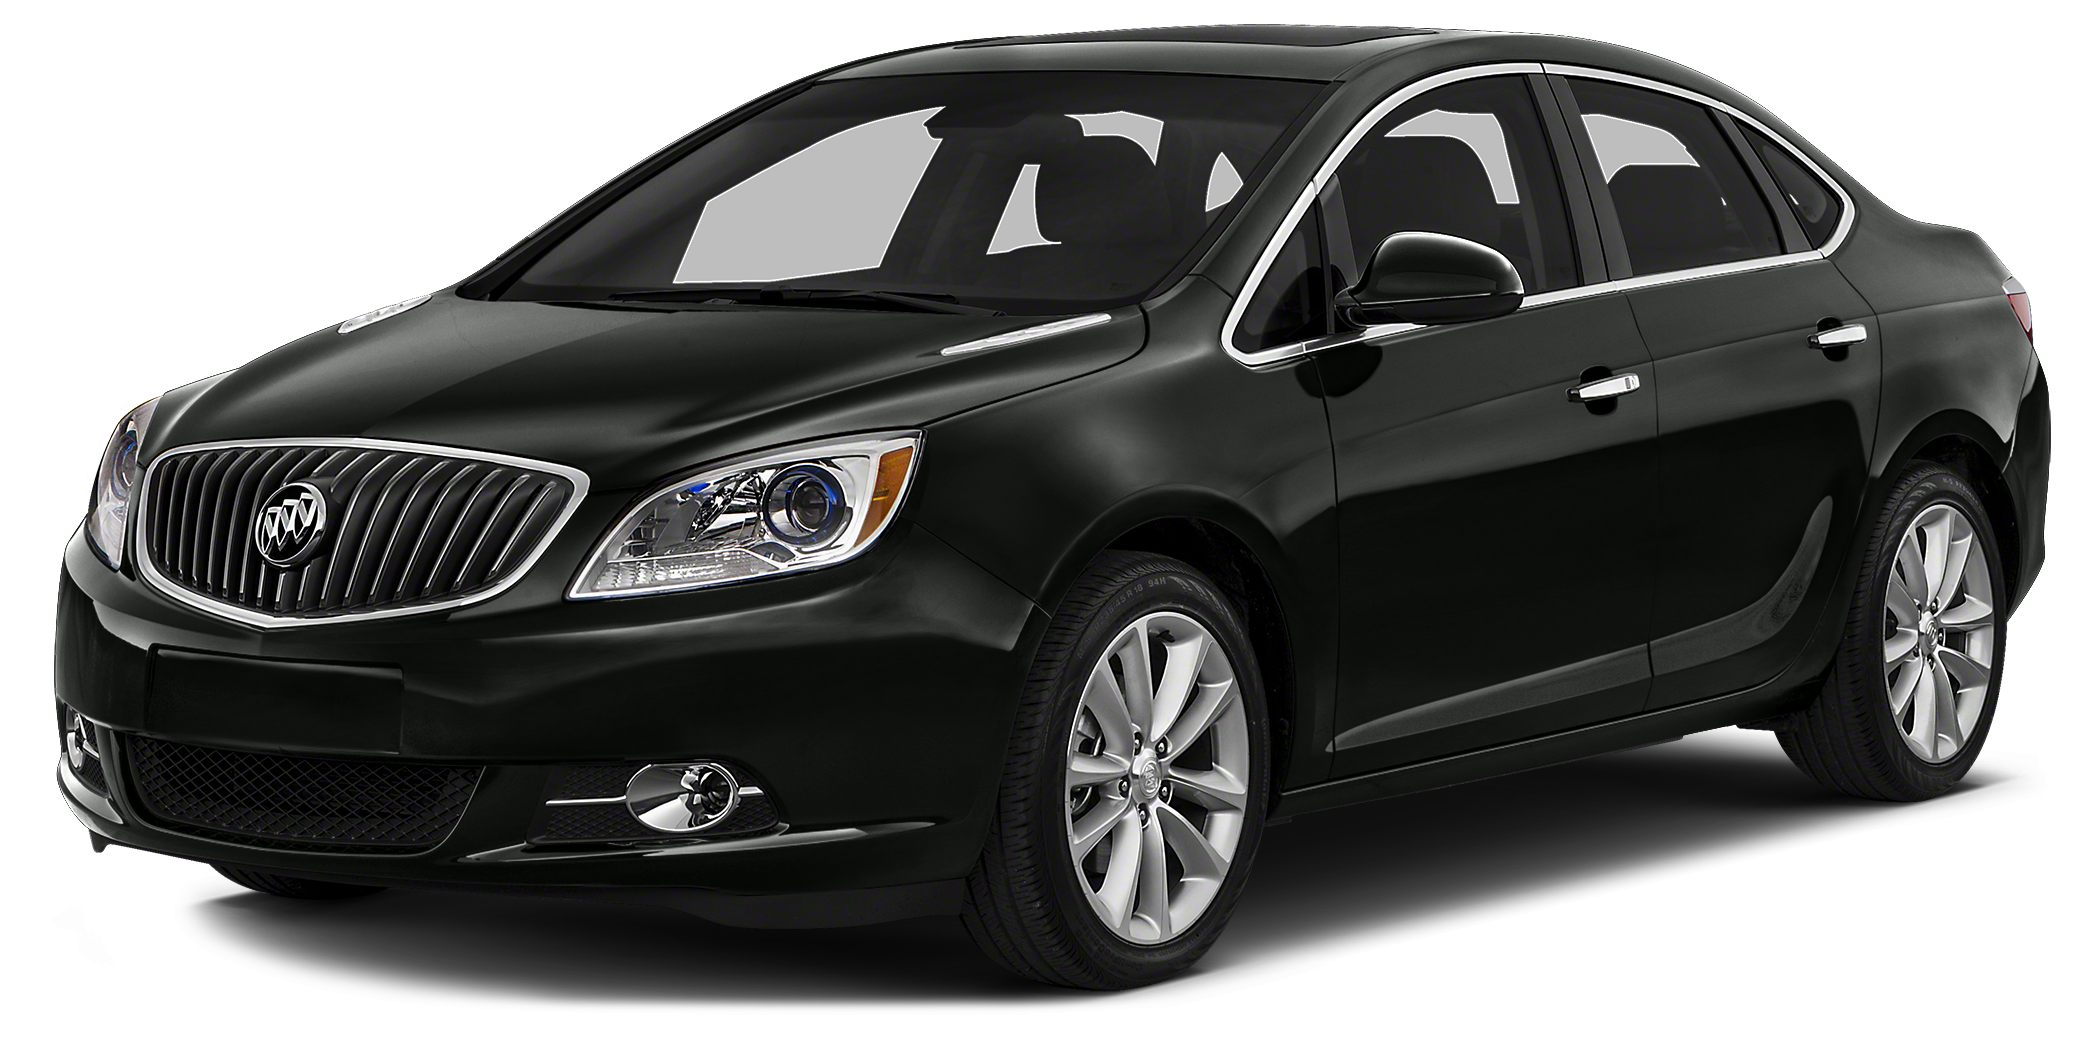 2014 Buick Verano Convenience Group This 2014 Buick Verano CONVENIENCE GROUP includes a backup sen